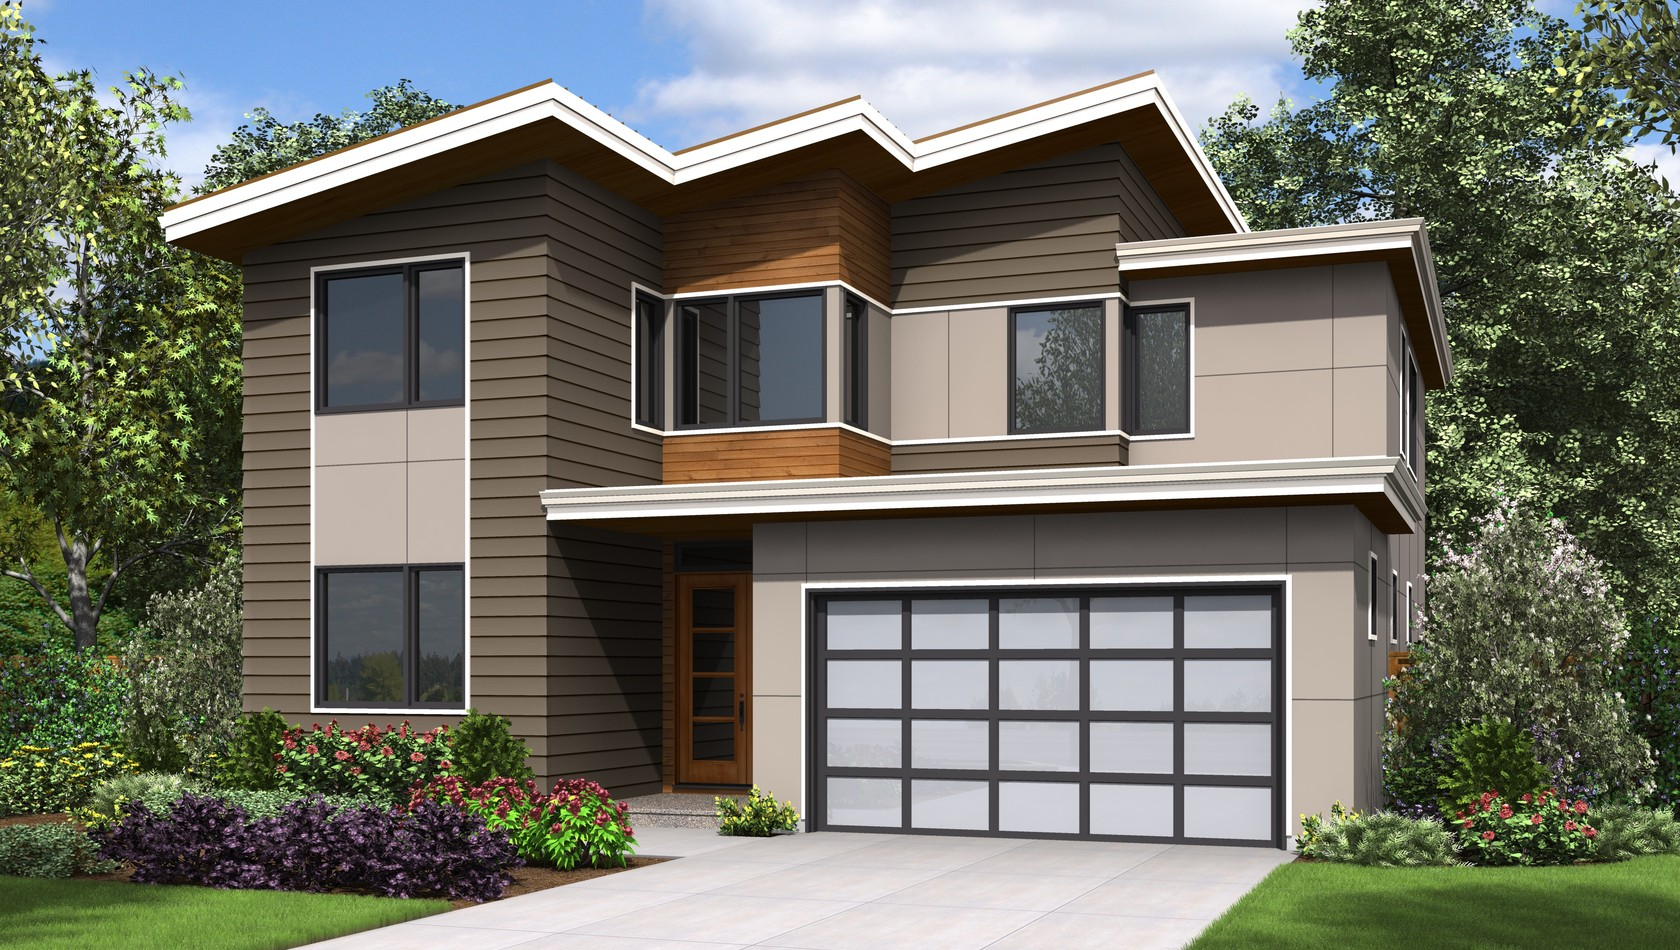 Main image for house plan 22209: The Golden